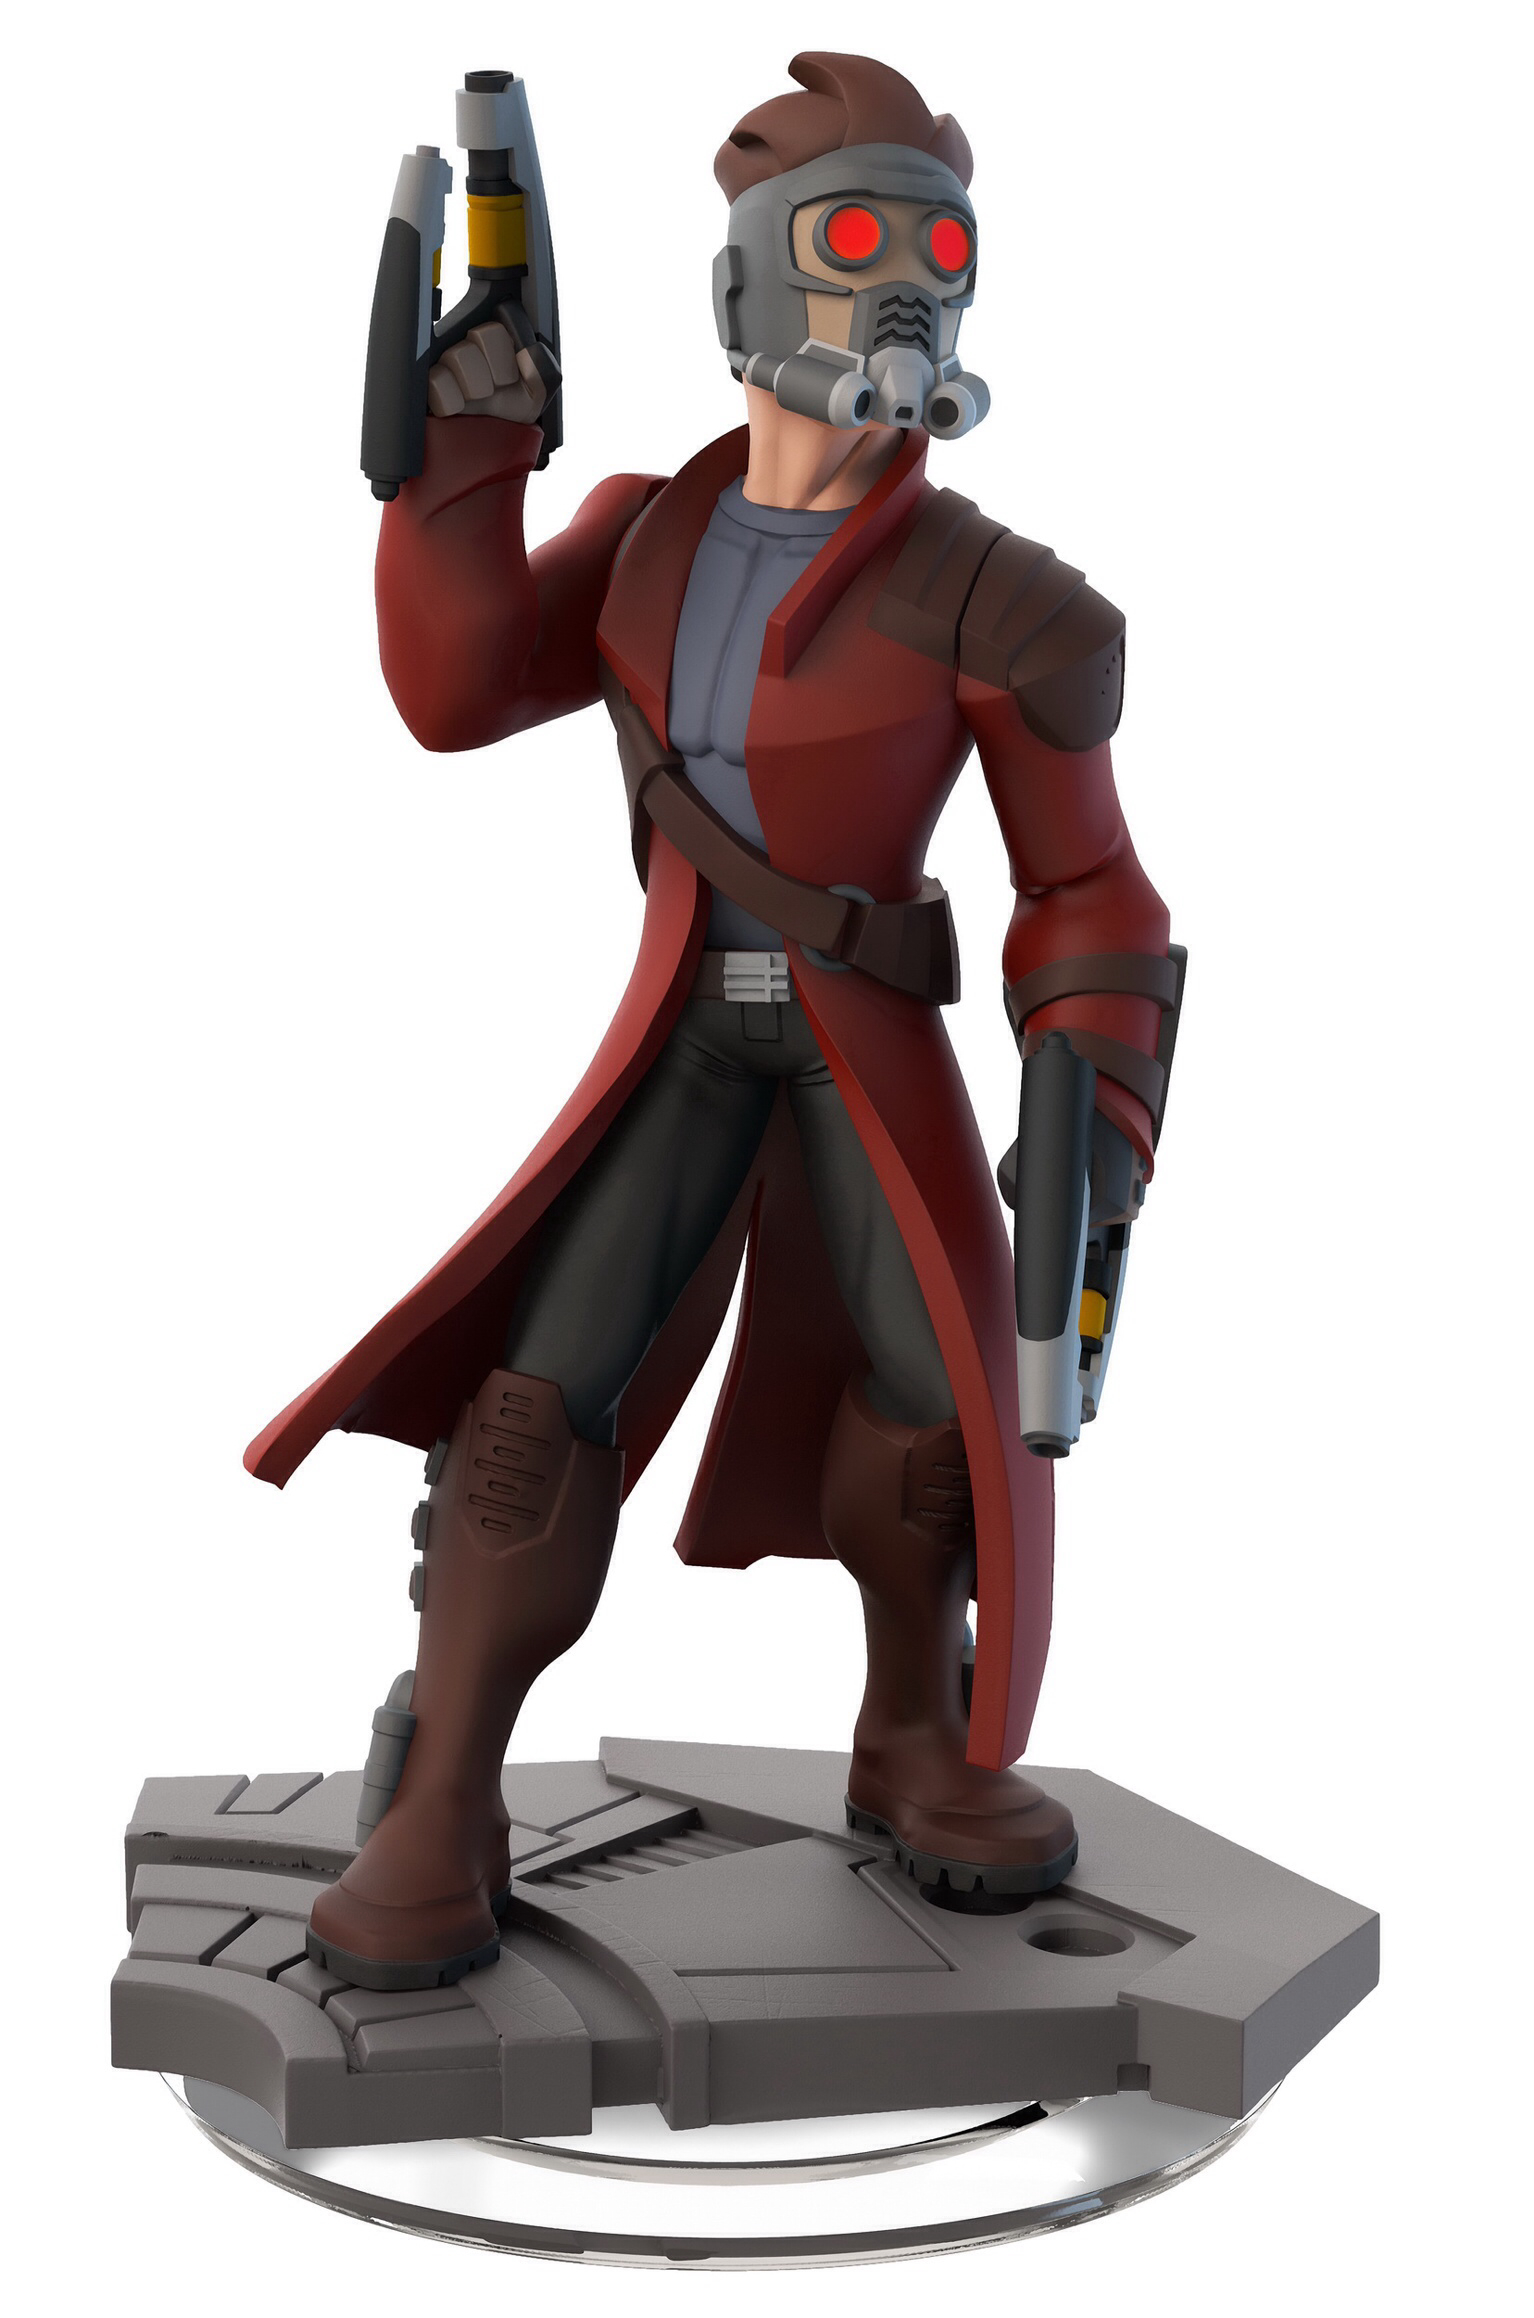 FIG: DISNEY INFINITY 2.0 STAR LORD (MARVEL) (USED)